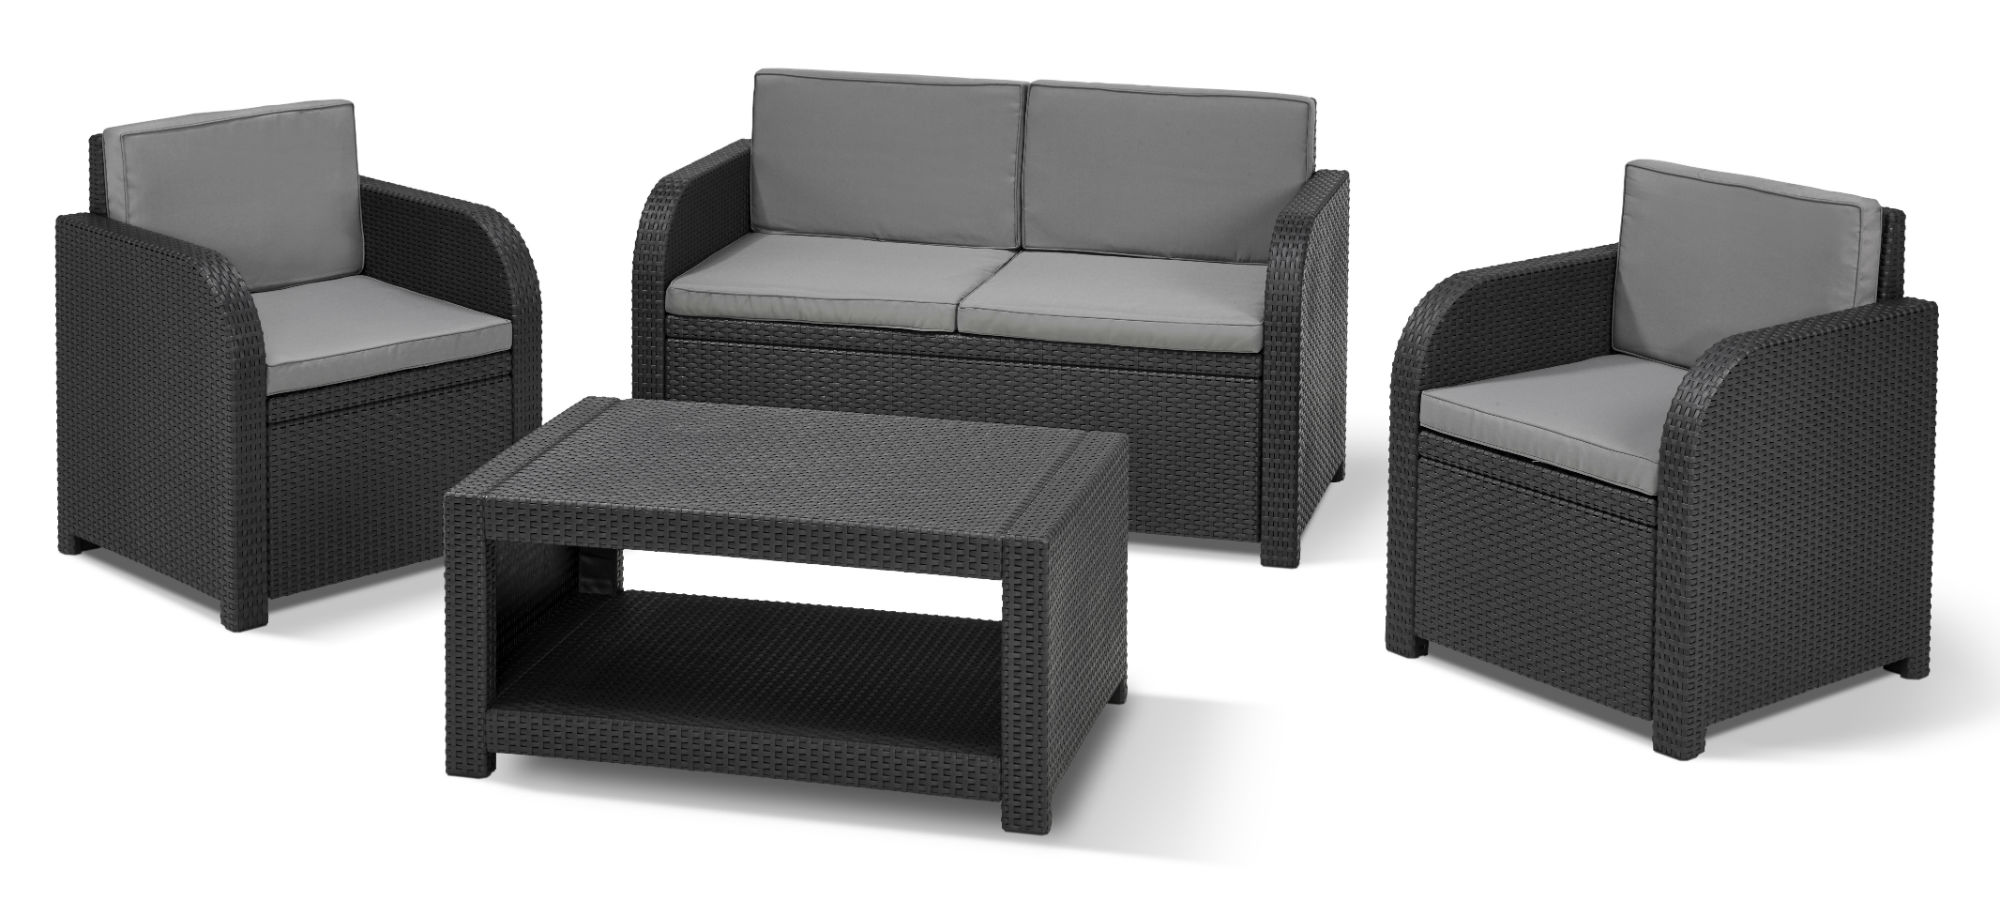 allibert modena loungeset grafiet allibert. Black Bedroom Furniture Sets. Home Design Ideas